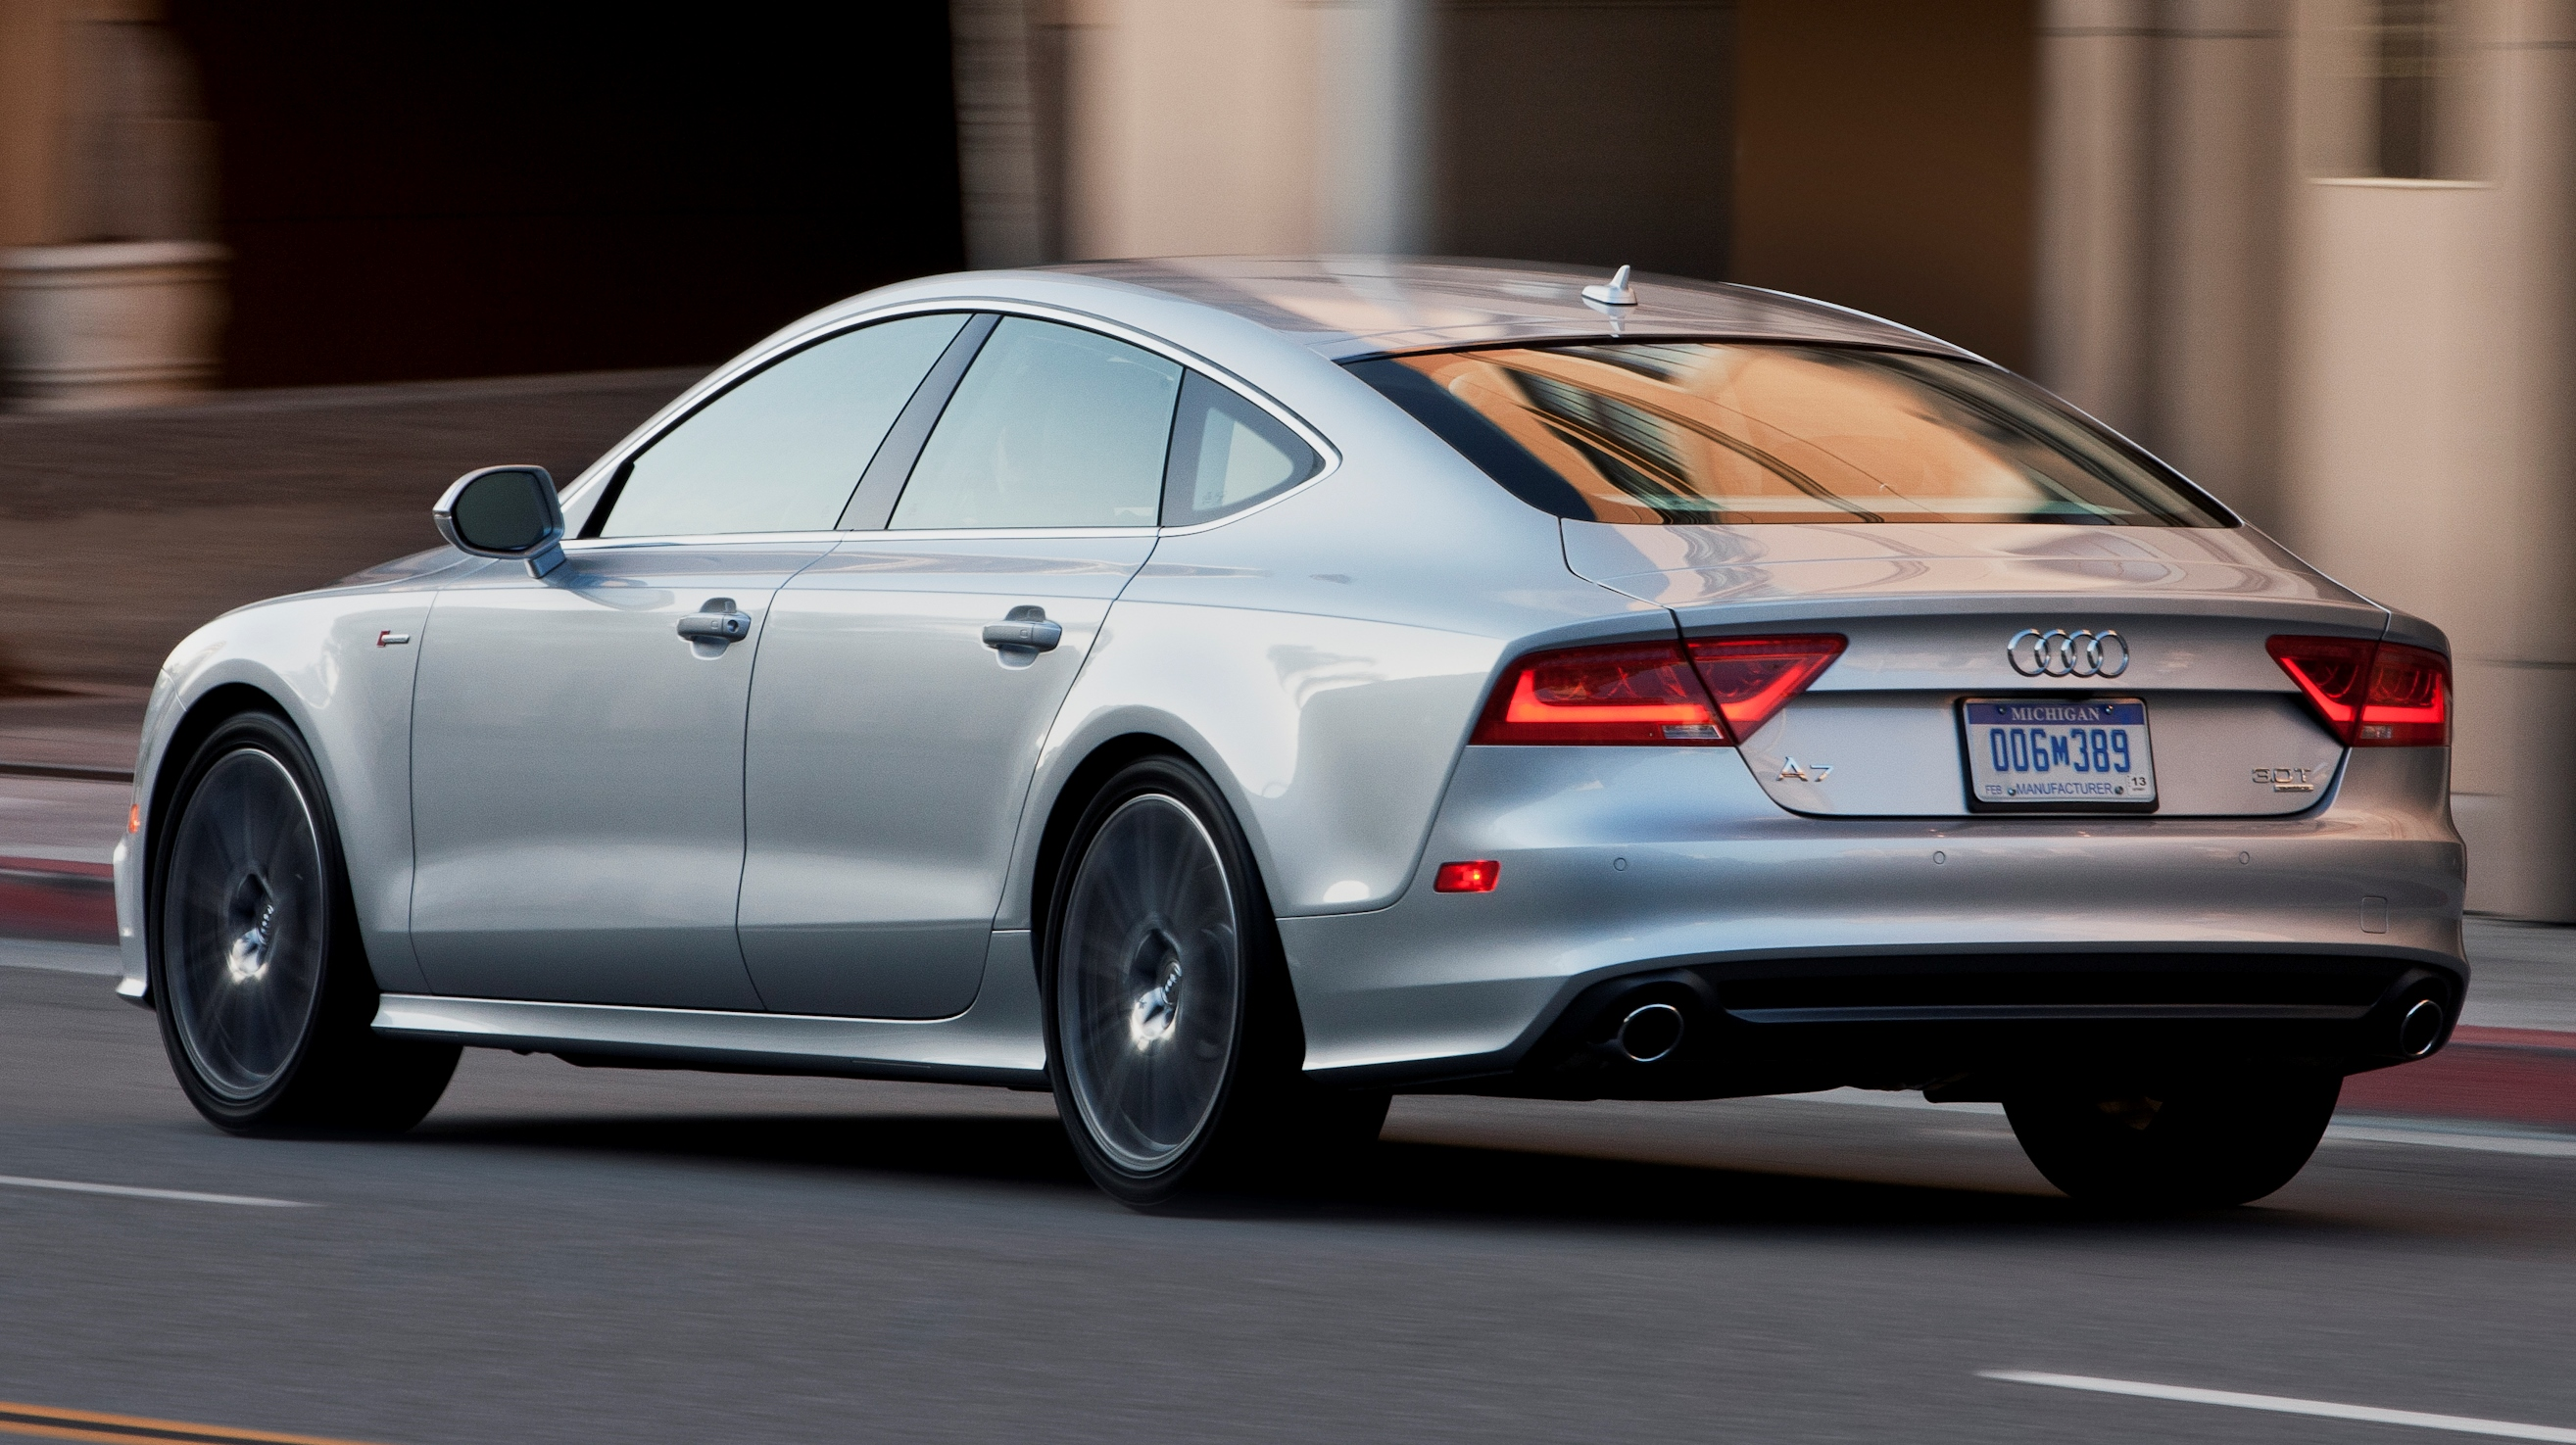 photos bestcarmag rs informations price makes audi articles com